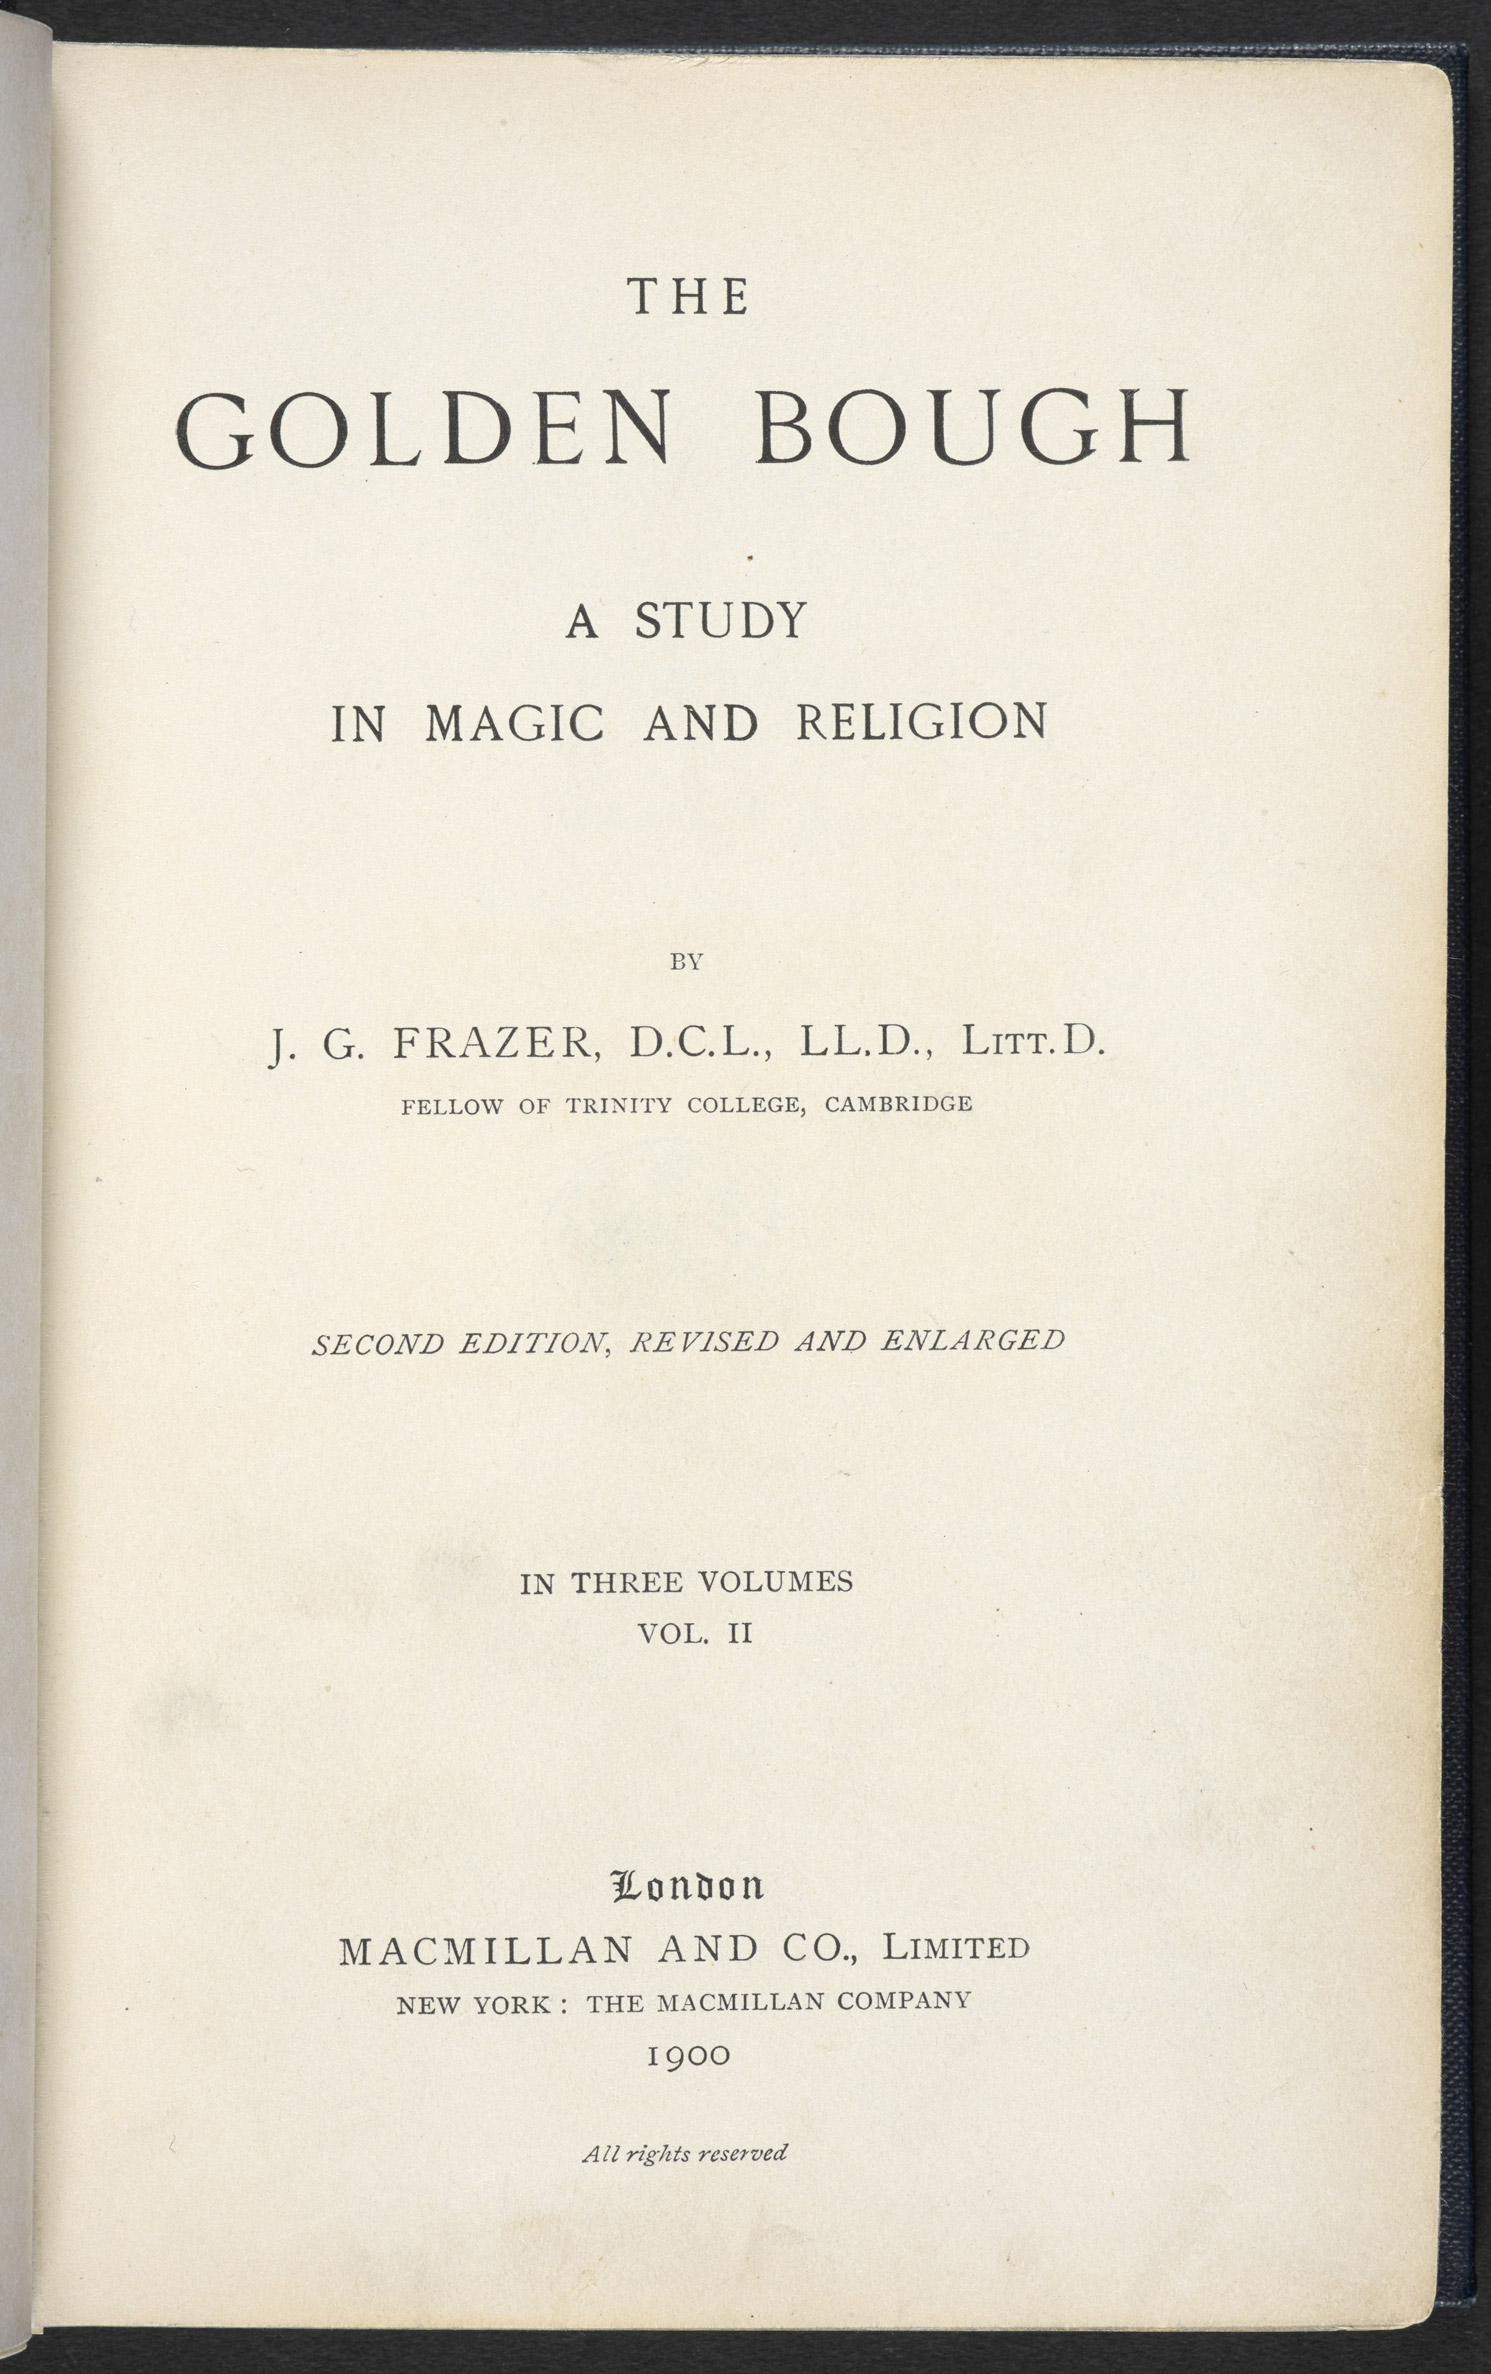 The Golden Bough, a source referenced in The Waste Land